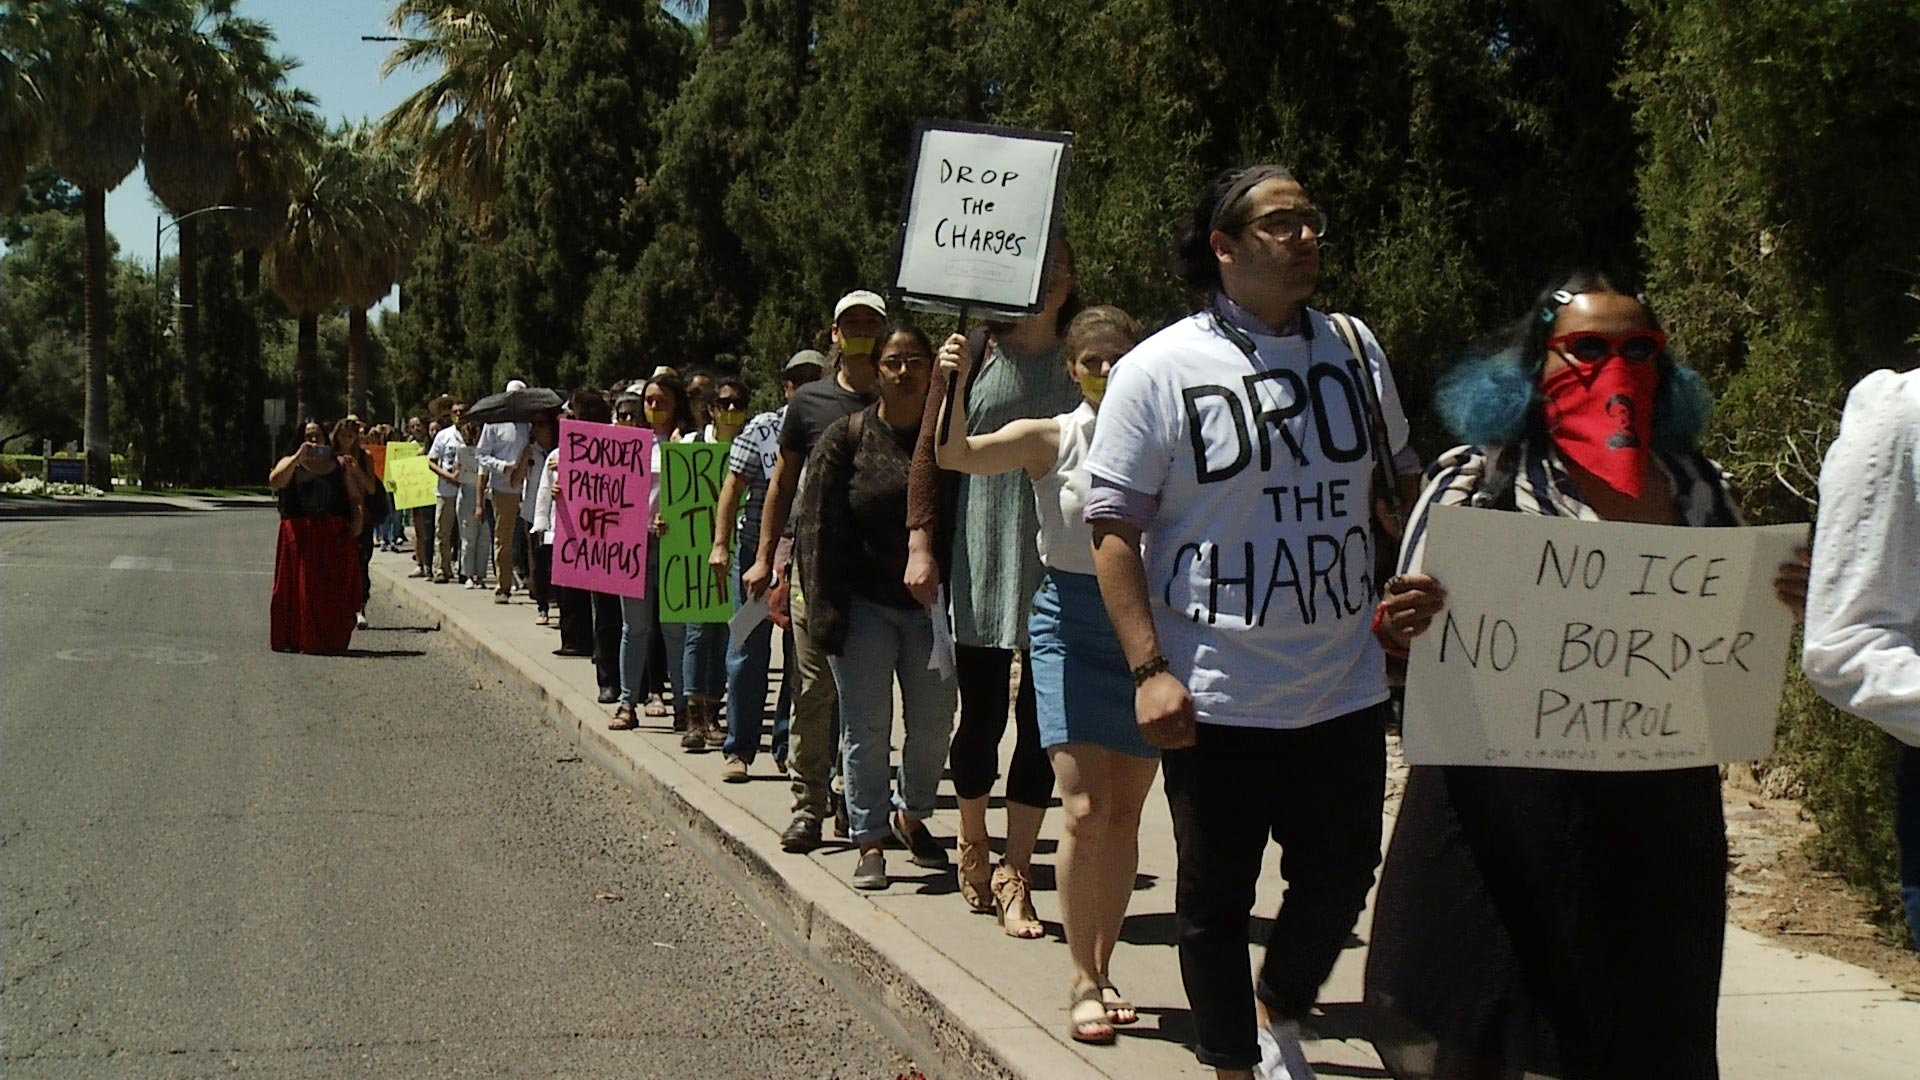 Protesters make their way to Old Main at the University of Arizona on April 10, 2019. They were demonstrating in support of three students cited for protesting a presentation given in a classroom by Border Patrol agents in March.